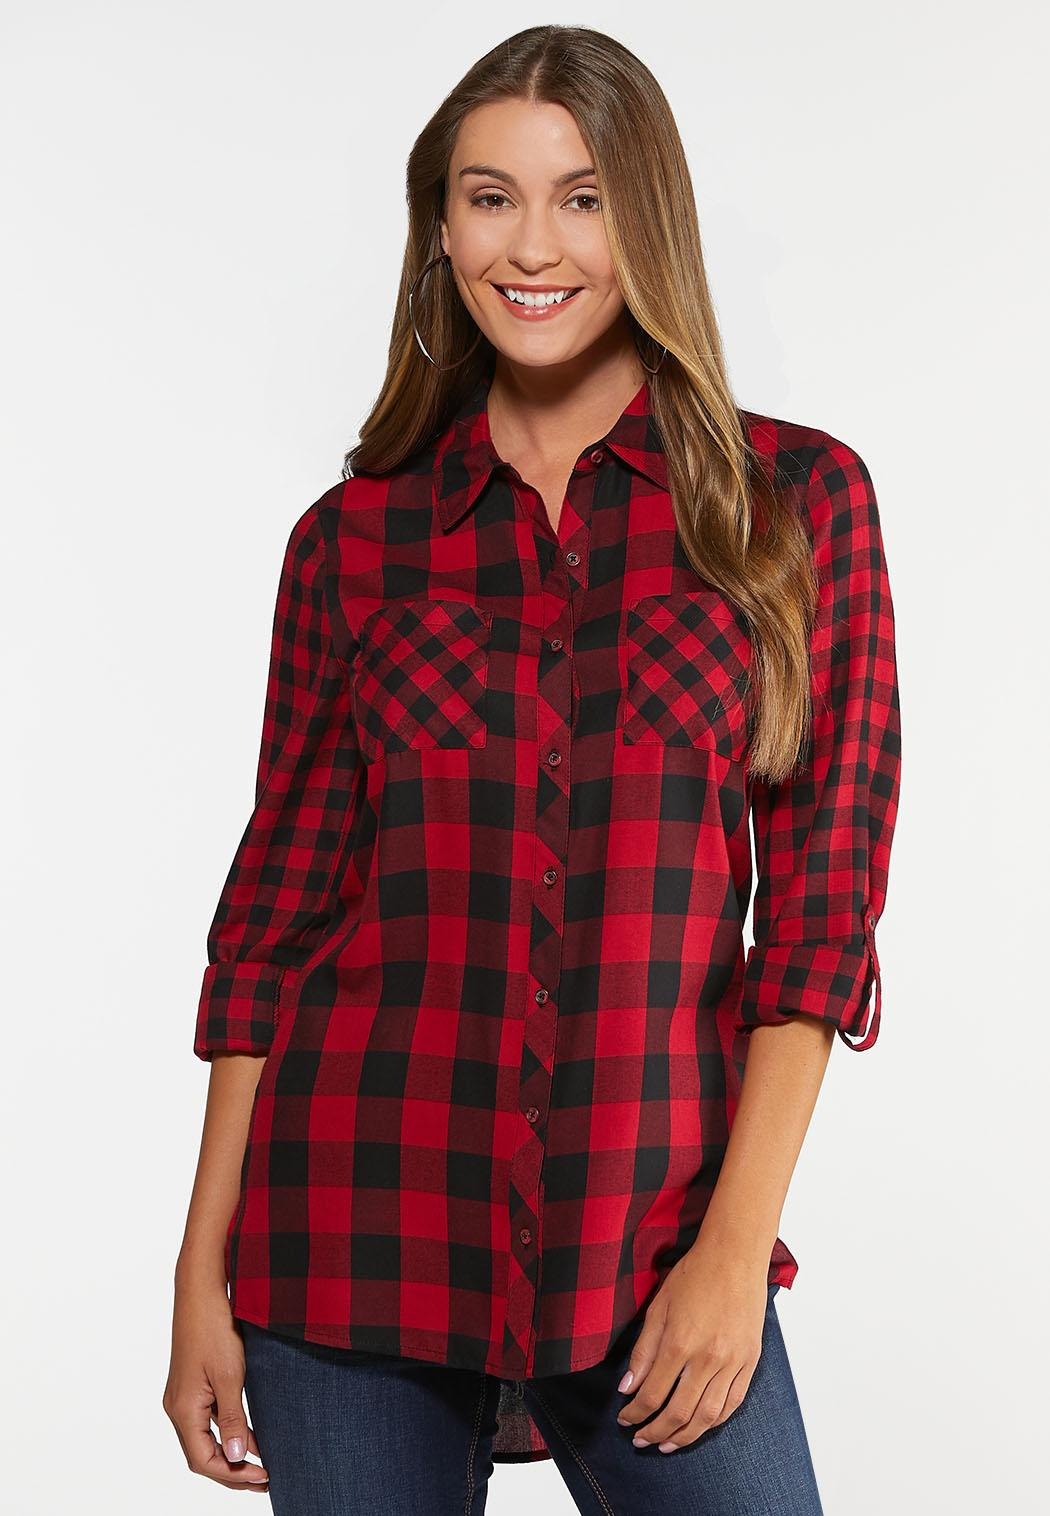 info for hot-selling latest temperament shoes Plus Size Red Buffalo Plaid Top Shirts & Amp ; Blouses Cato Fashions